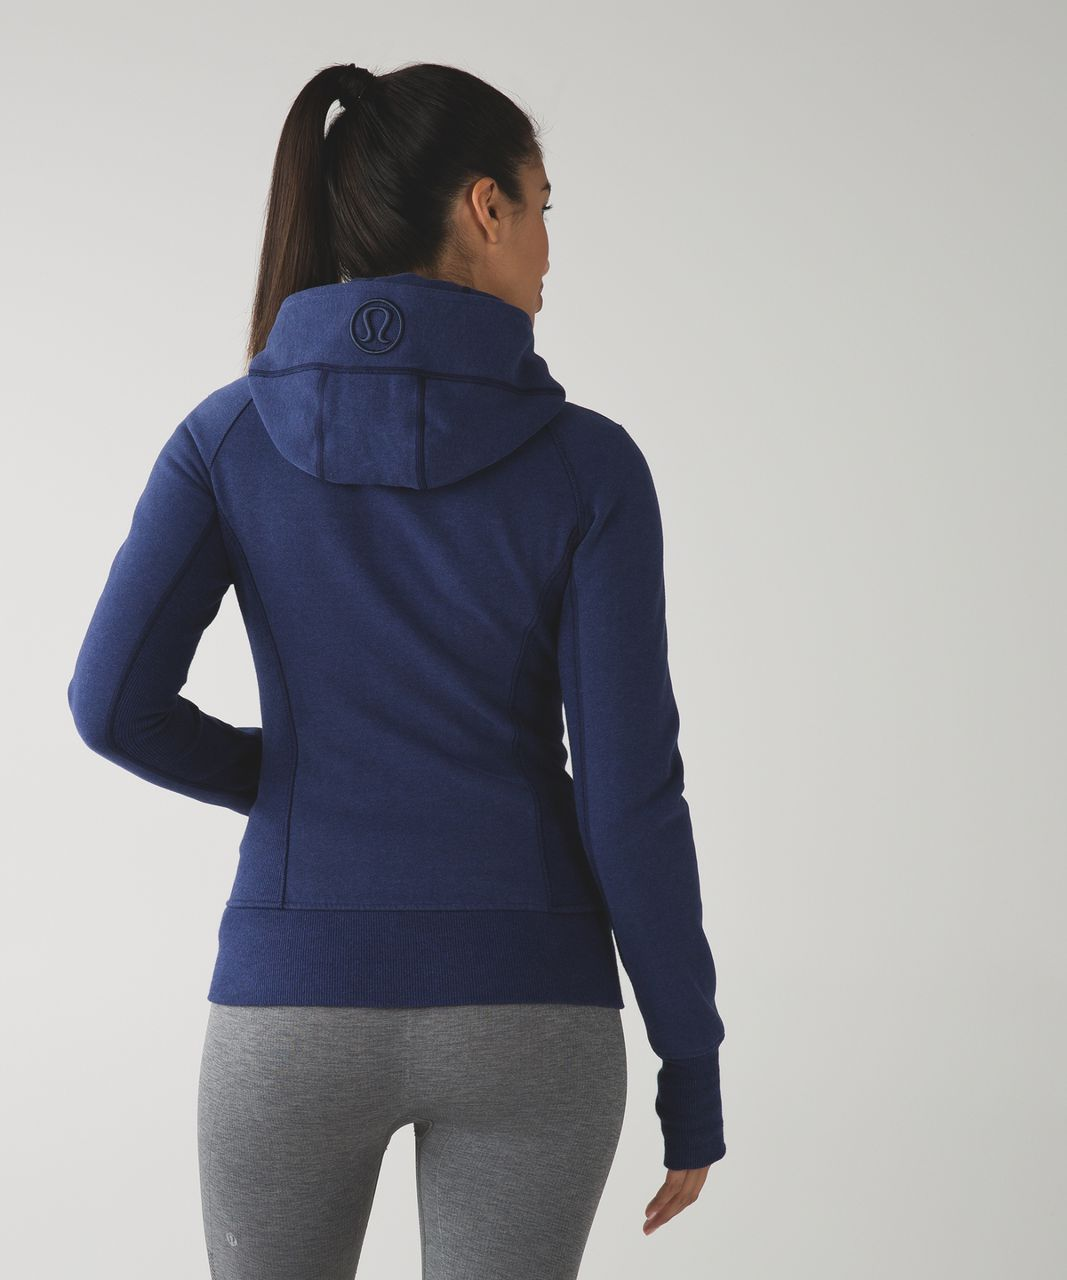 Lululemon Scuba Hoodie II - Heathered Denim Majestic / Black